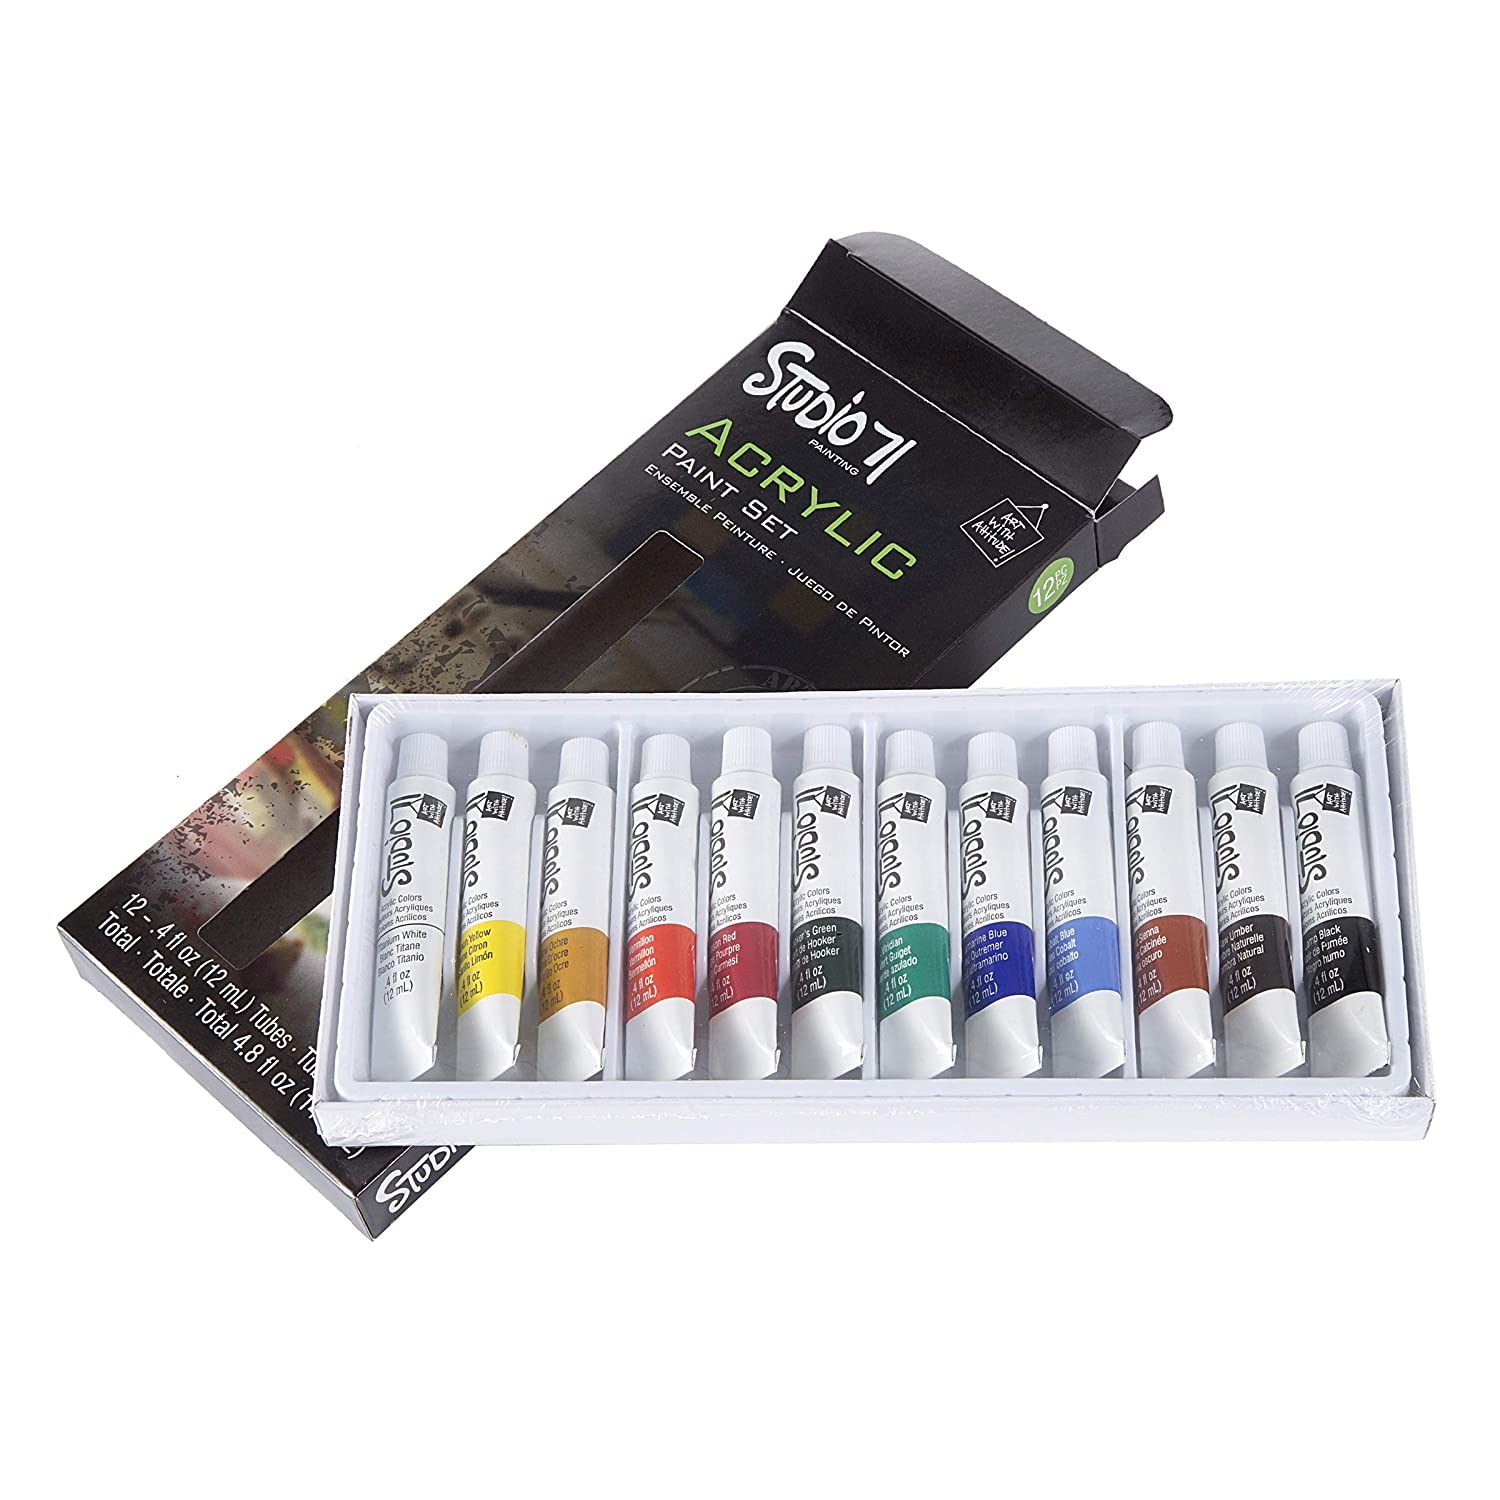 Amazon.com: Darice 12 Pc Acrylic Paint Set Water Based For Canvas, Wood, Fabric, Paper & More!: Toys & Games